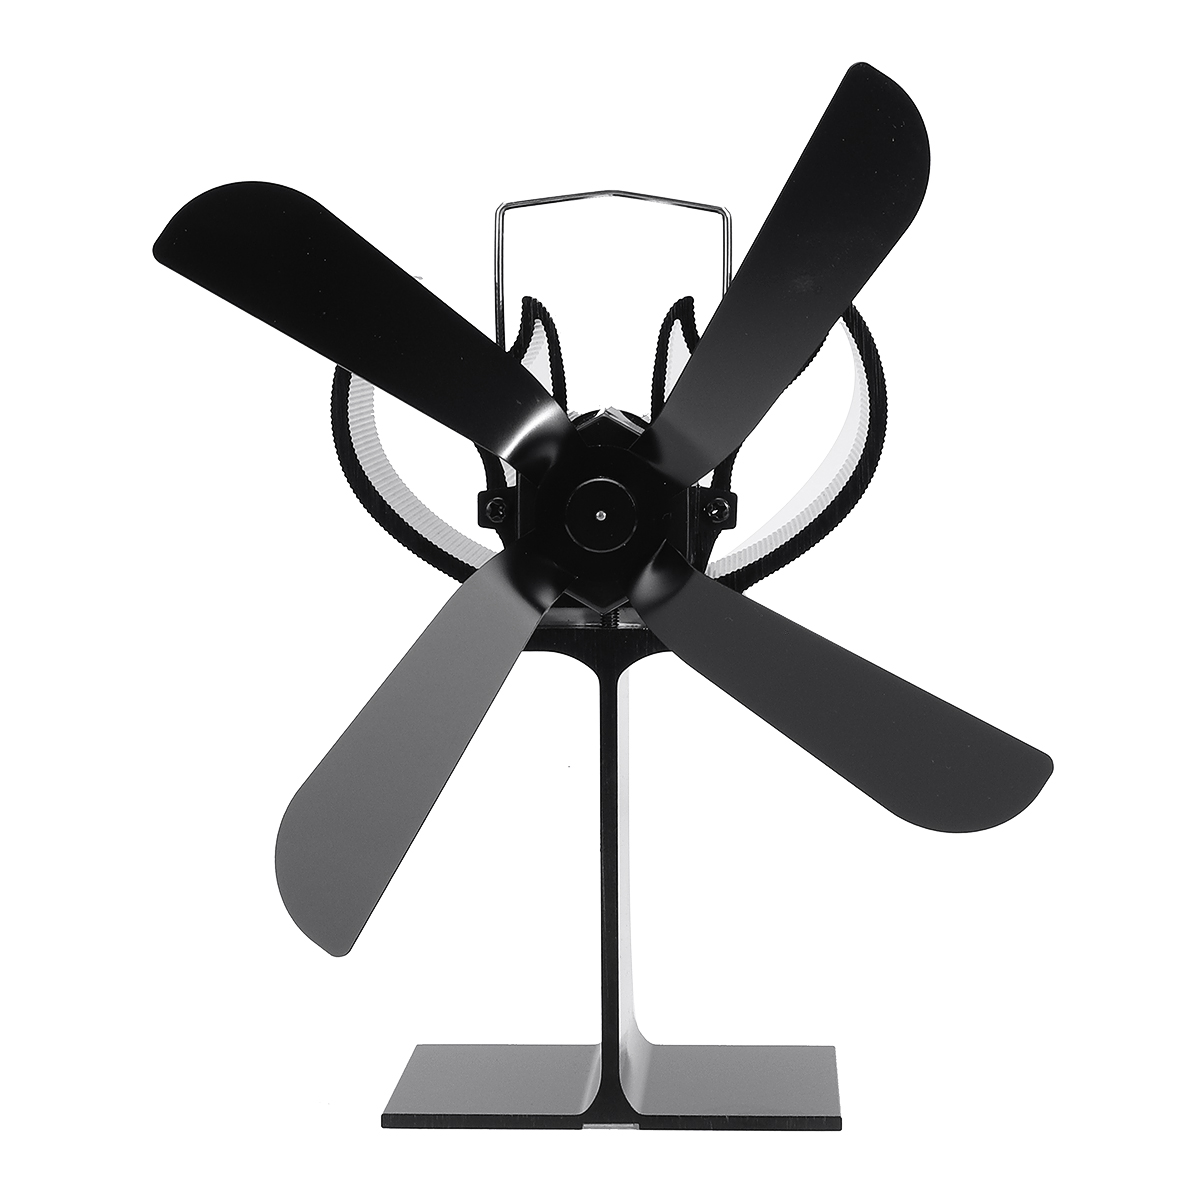 Fireplace 4 Blade Heat Powered Stove Fan Komin Log Wood Burner Eco Friendly Quiet Fan Home Efficient Heat Distribution Black